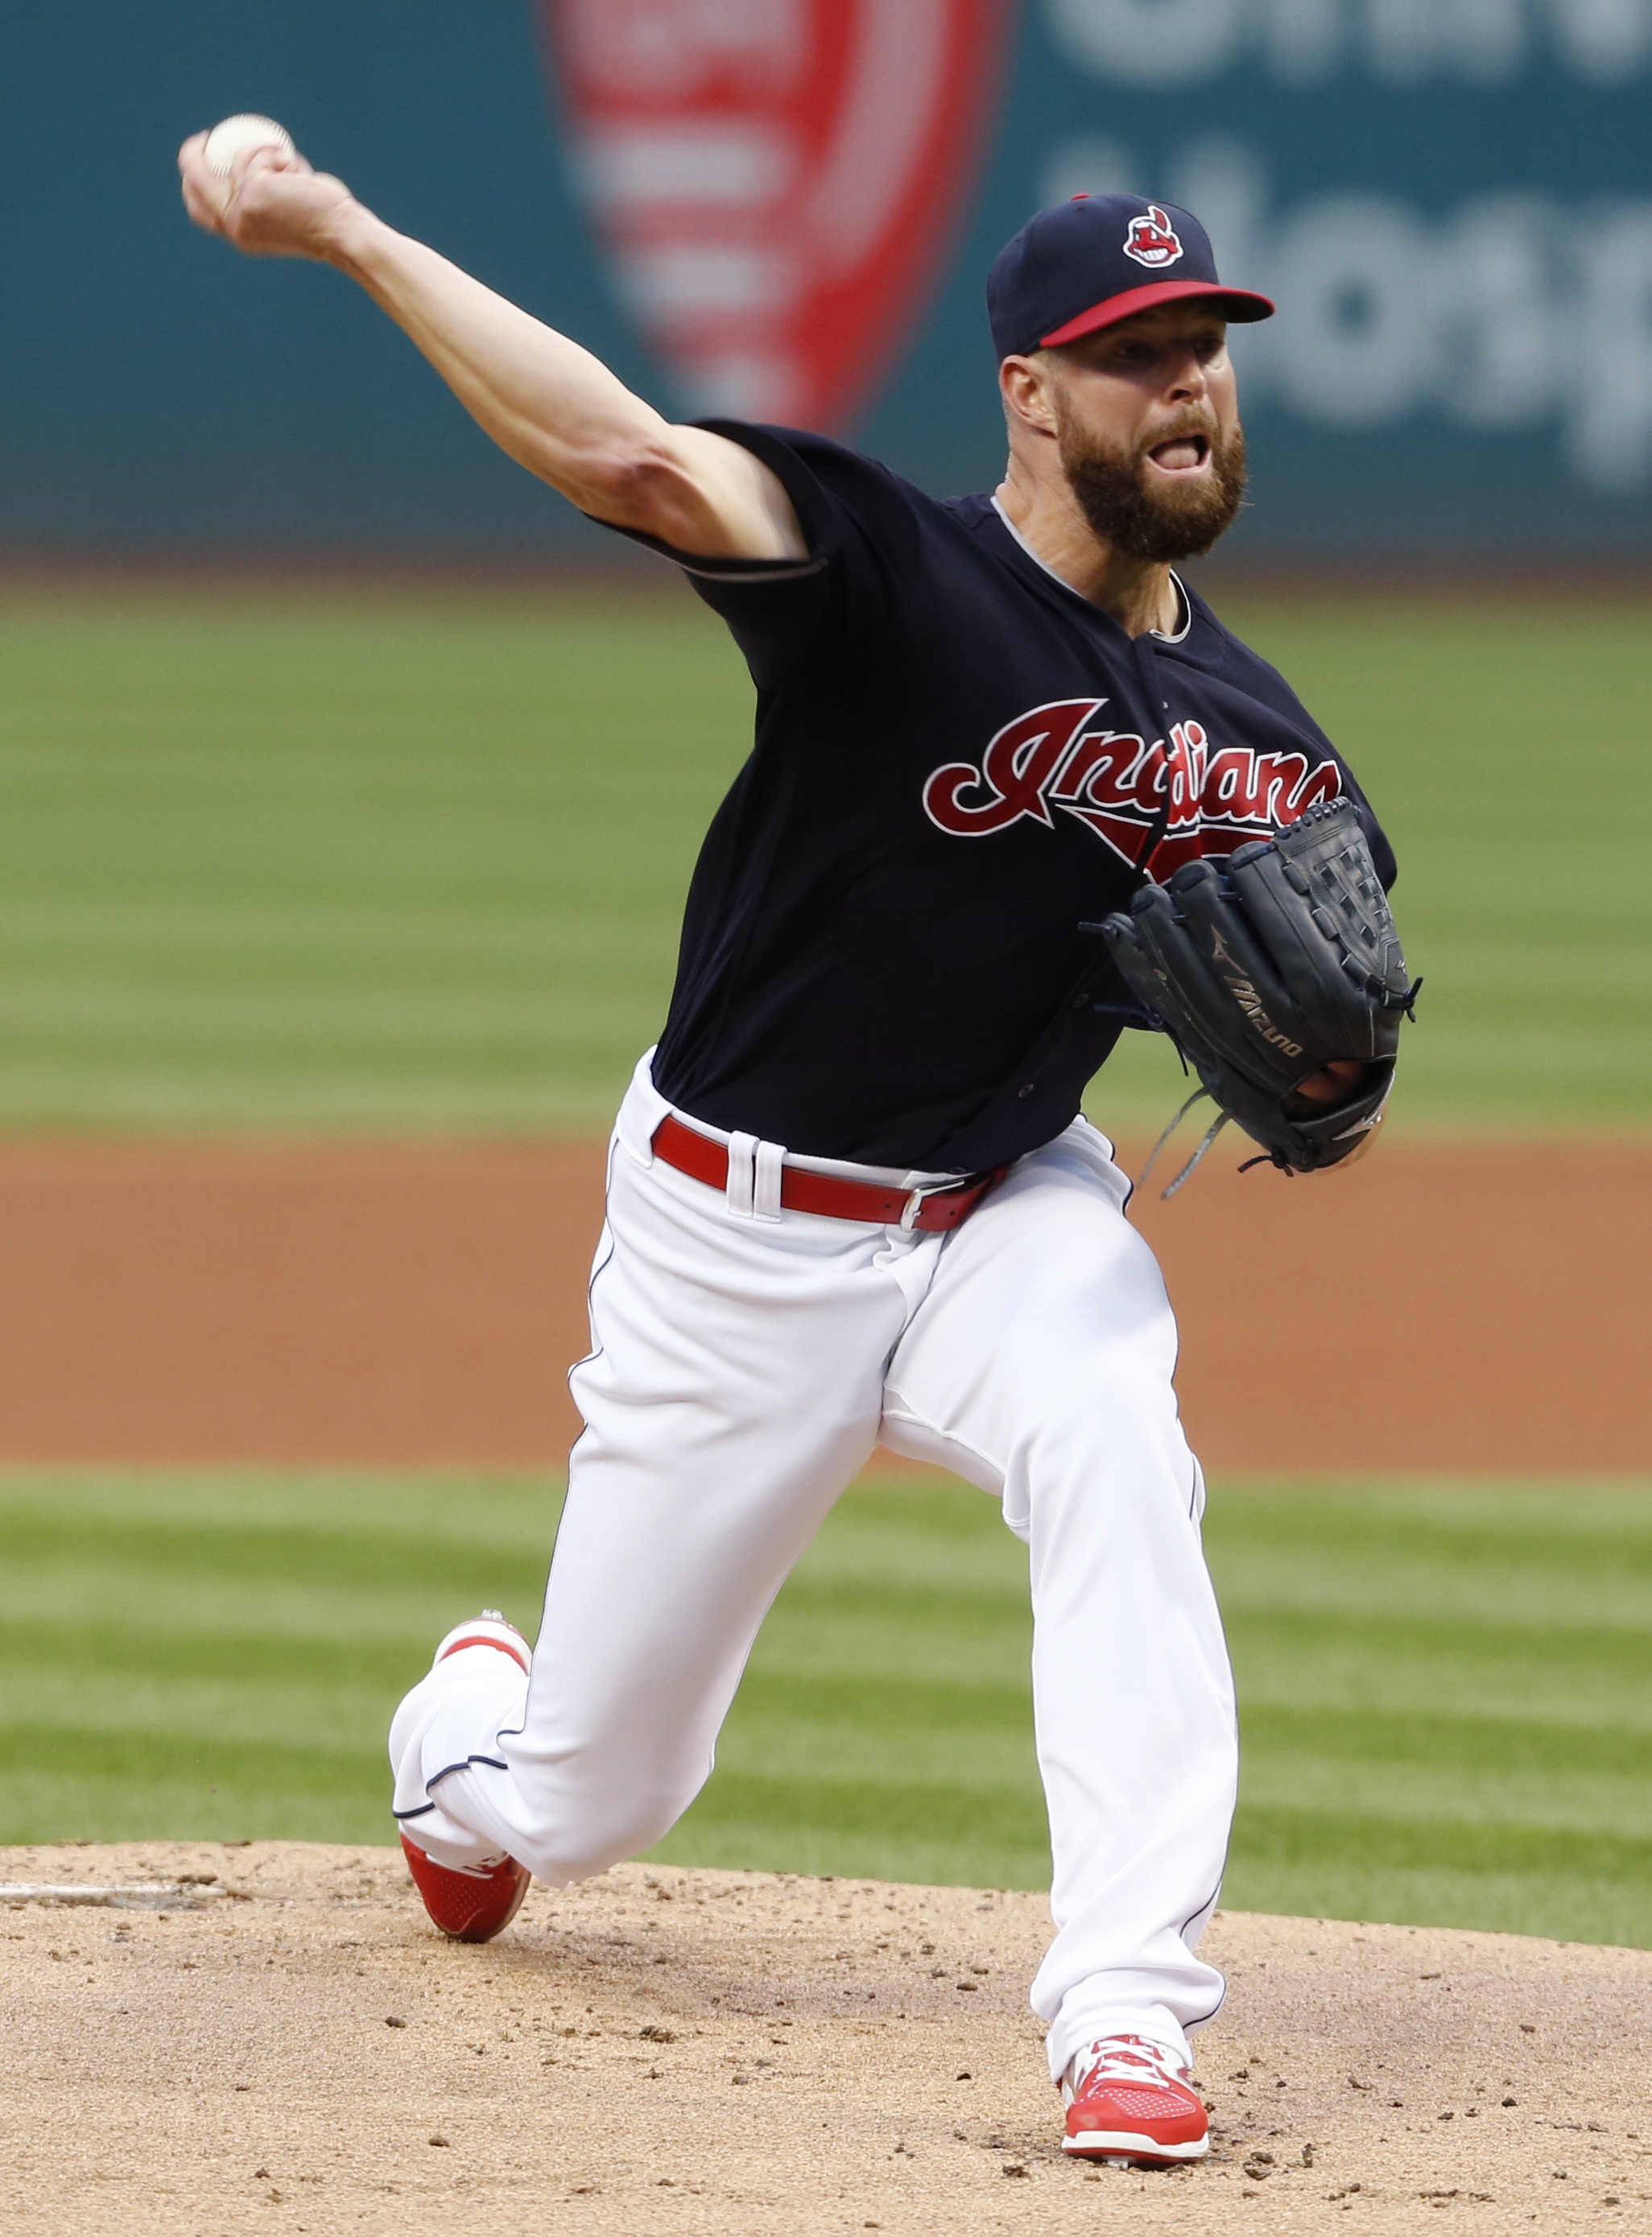 Cleveland Indians starting pitcher Corey Kluber delivers against the Minnesota Twins during the first inning of a baseball game Wednesday, Aug. 31, 2016, in Cleveland. (AP Photo/Ron Schwane)